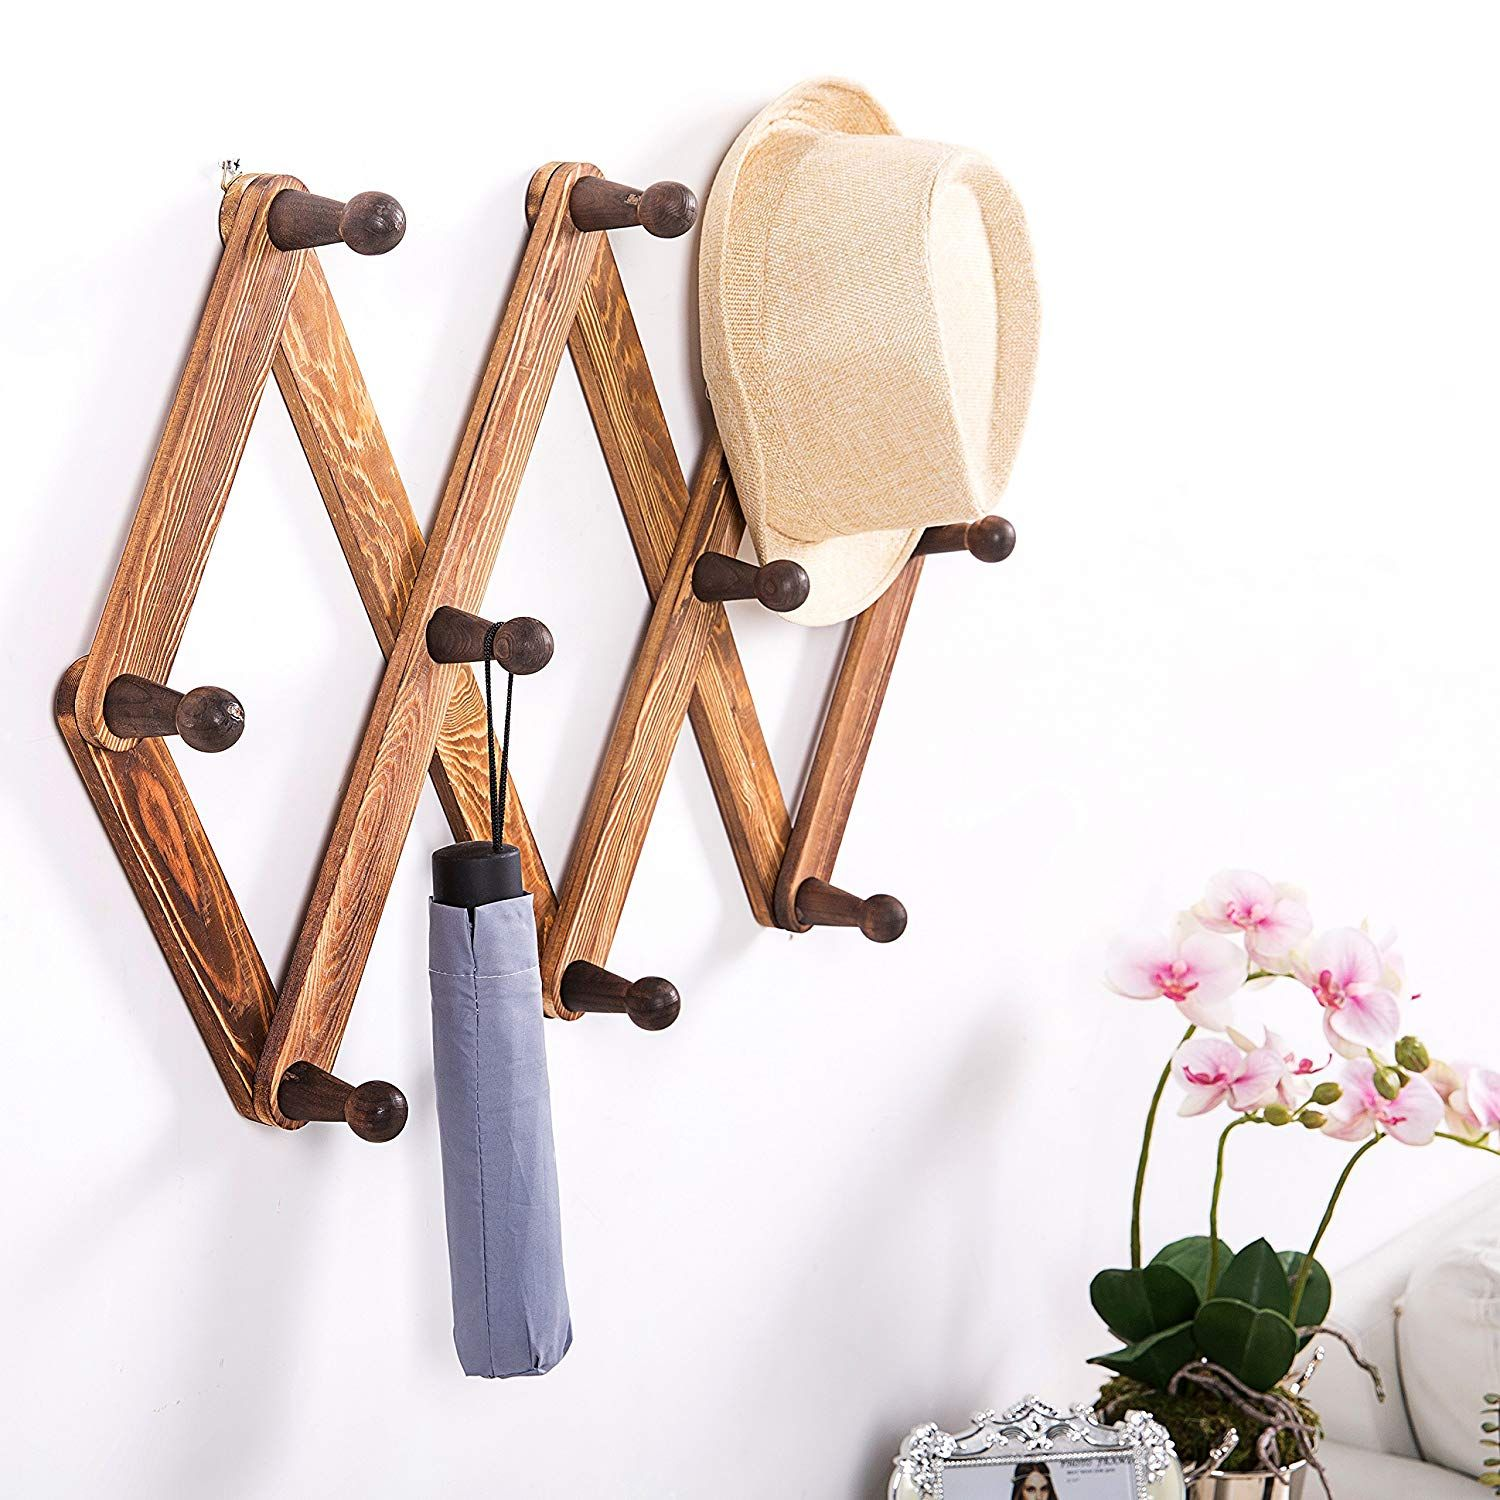 Stylish Dark Wood Wall Rack Hanging Hats Scarf Rack Tree Coat Rack